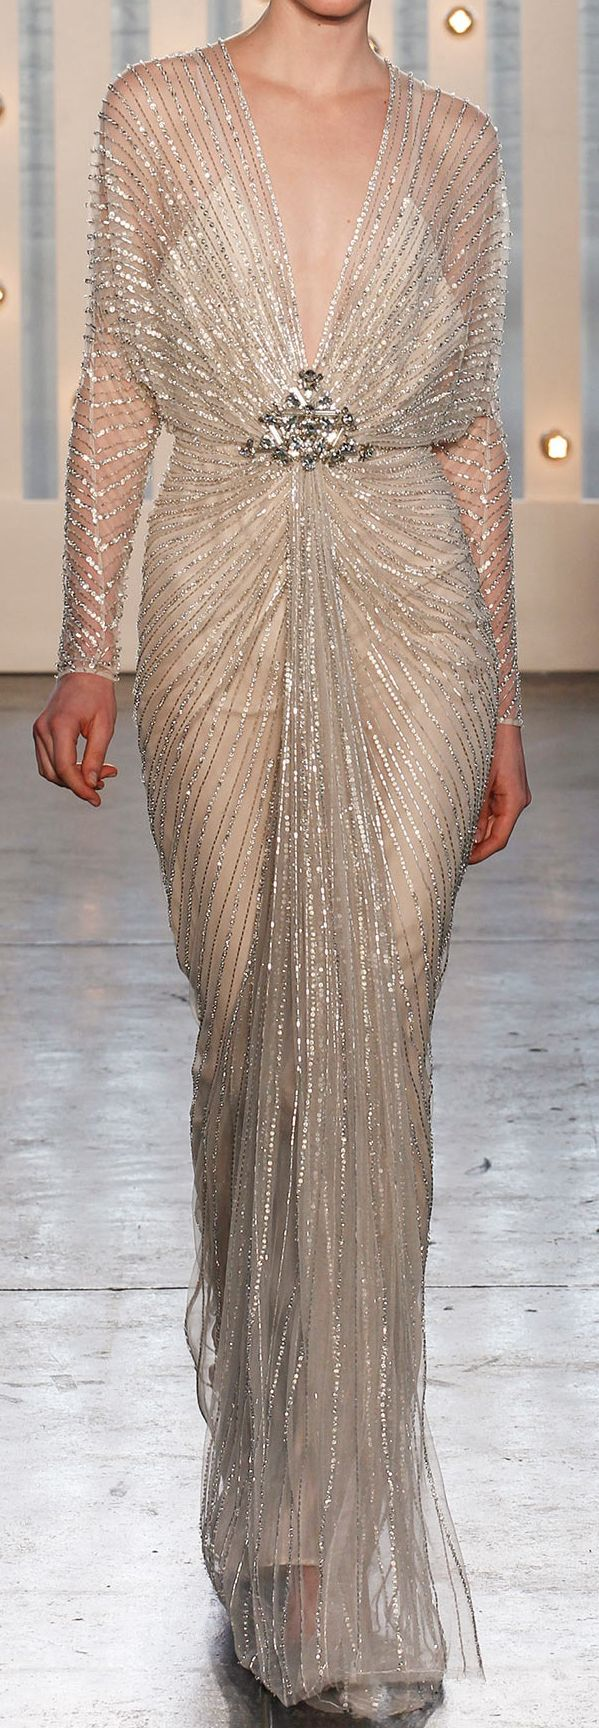 Jenny Packham vintage inspired gown #gatsby http://slimmingtipsblog.com/how-to-lose-weight-fast/